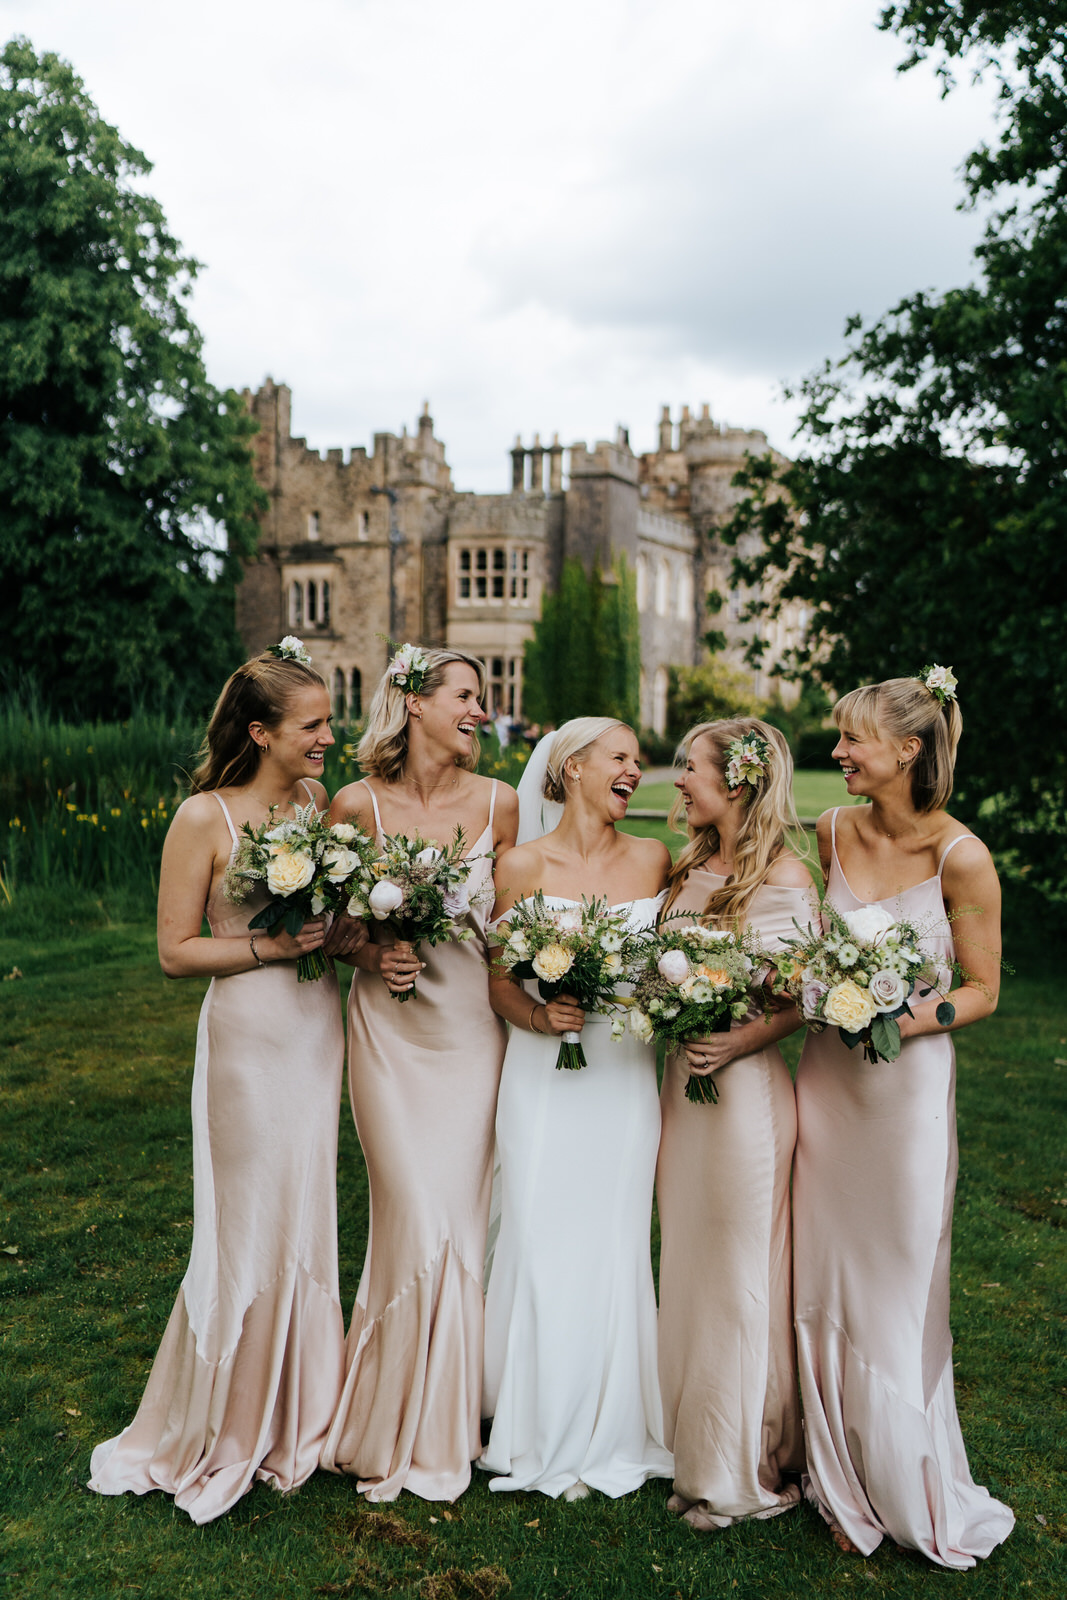 Smiling photograph of bridesmaids and bride holding bouquets with Hawarden Castle in the background